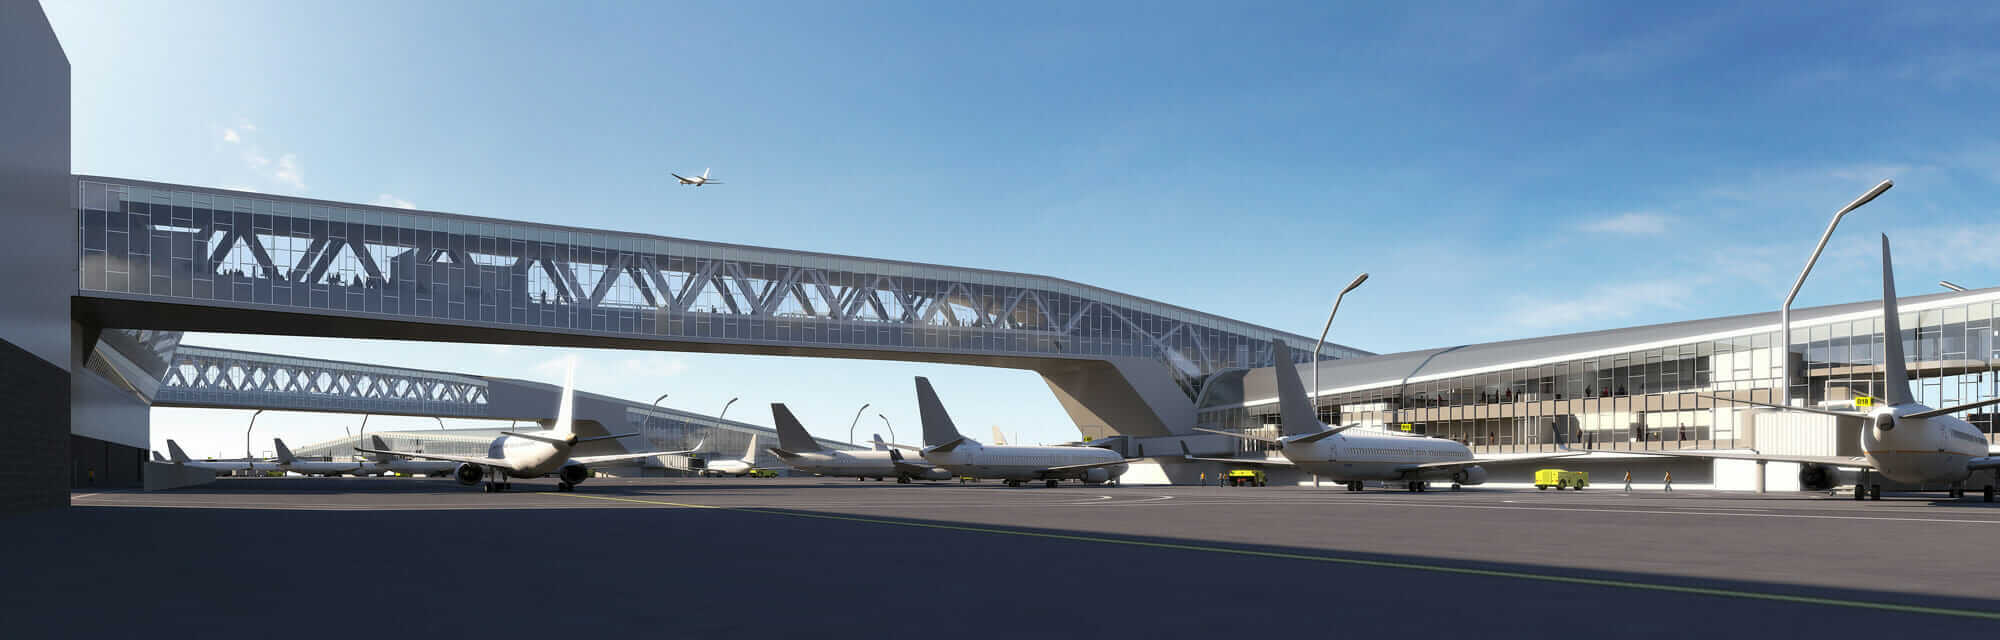 LaGuardia expansion rendering